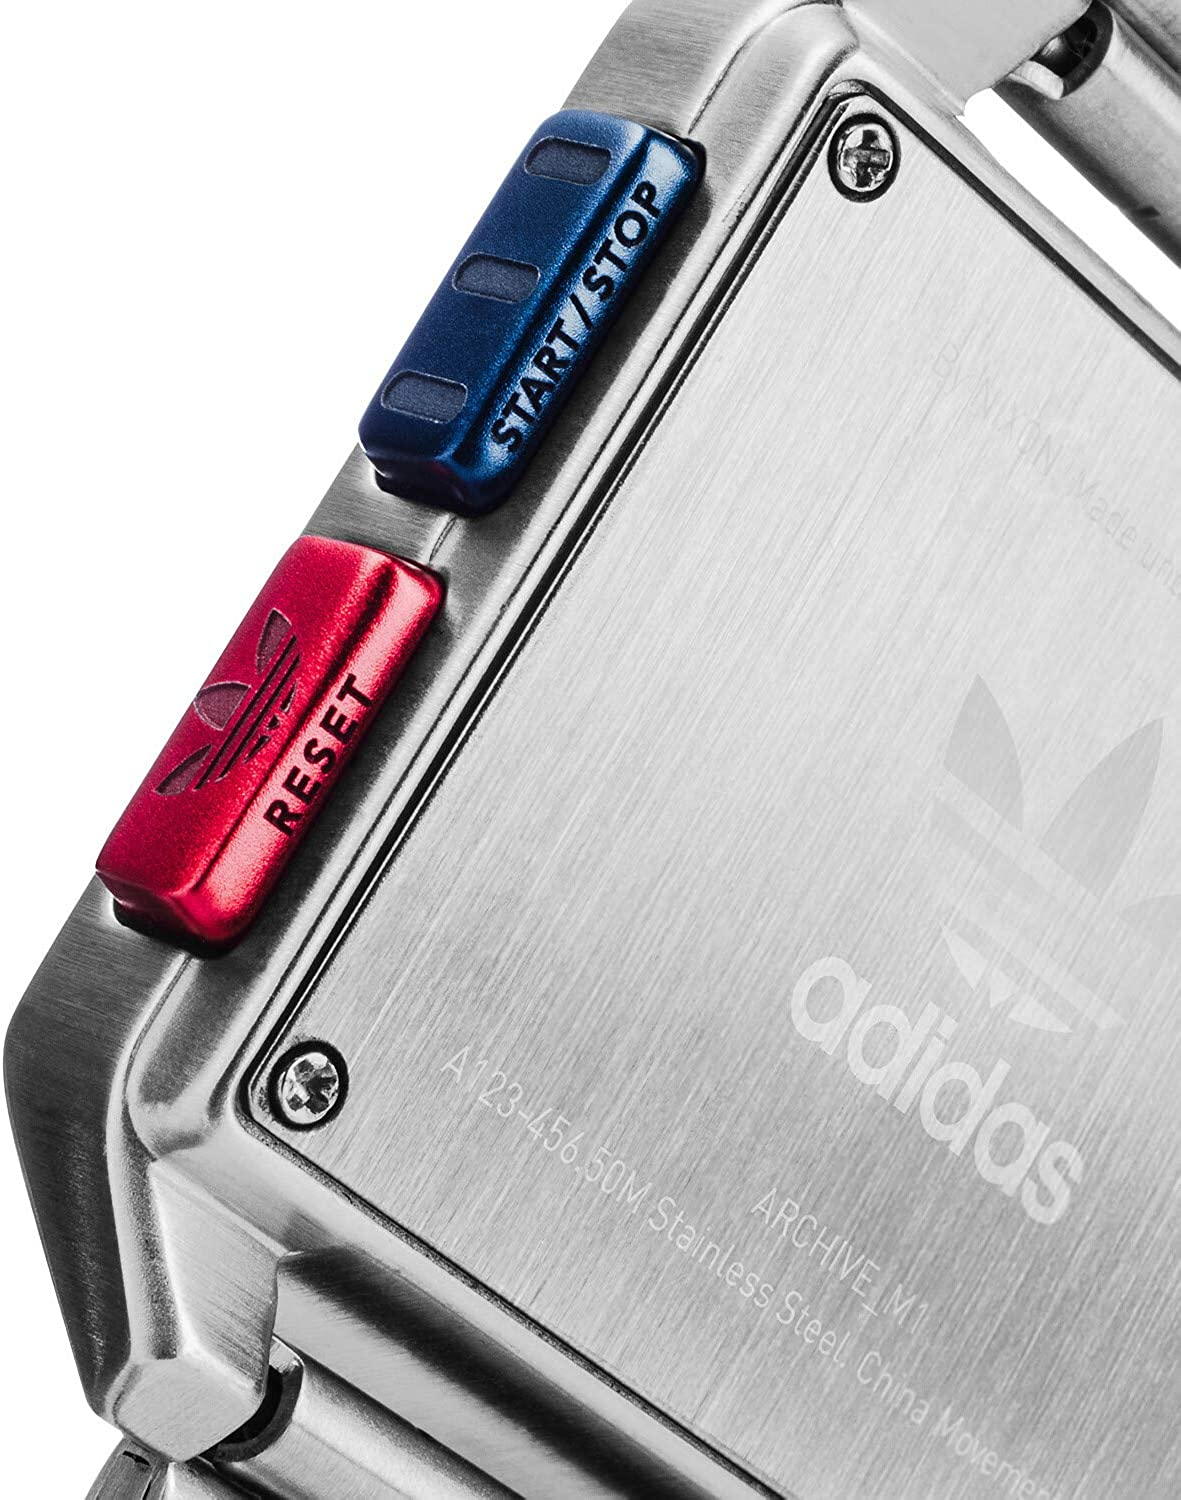 Adidas Watches Archive_M1. Men's 70's Style Stainless Steel Digital Watch with 5 Link Bracelet (36 mm). Silver / Black / Blue / Red